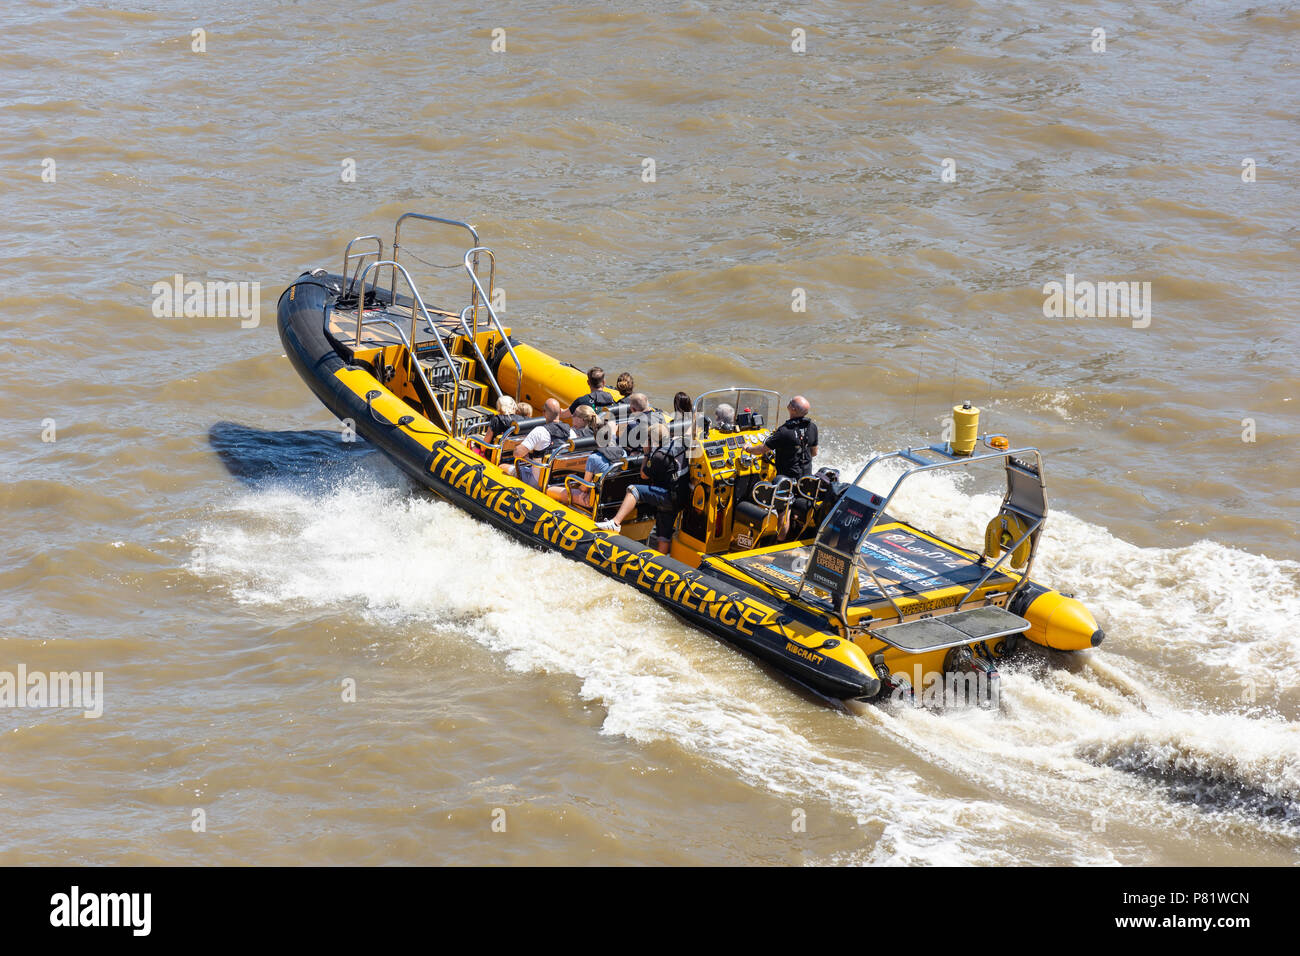 Thames Rib Experience power boat ride on River Thames at South Bank, London Borough of Lambeth, Greater London, England, United Kingdom - Stock Image